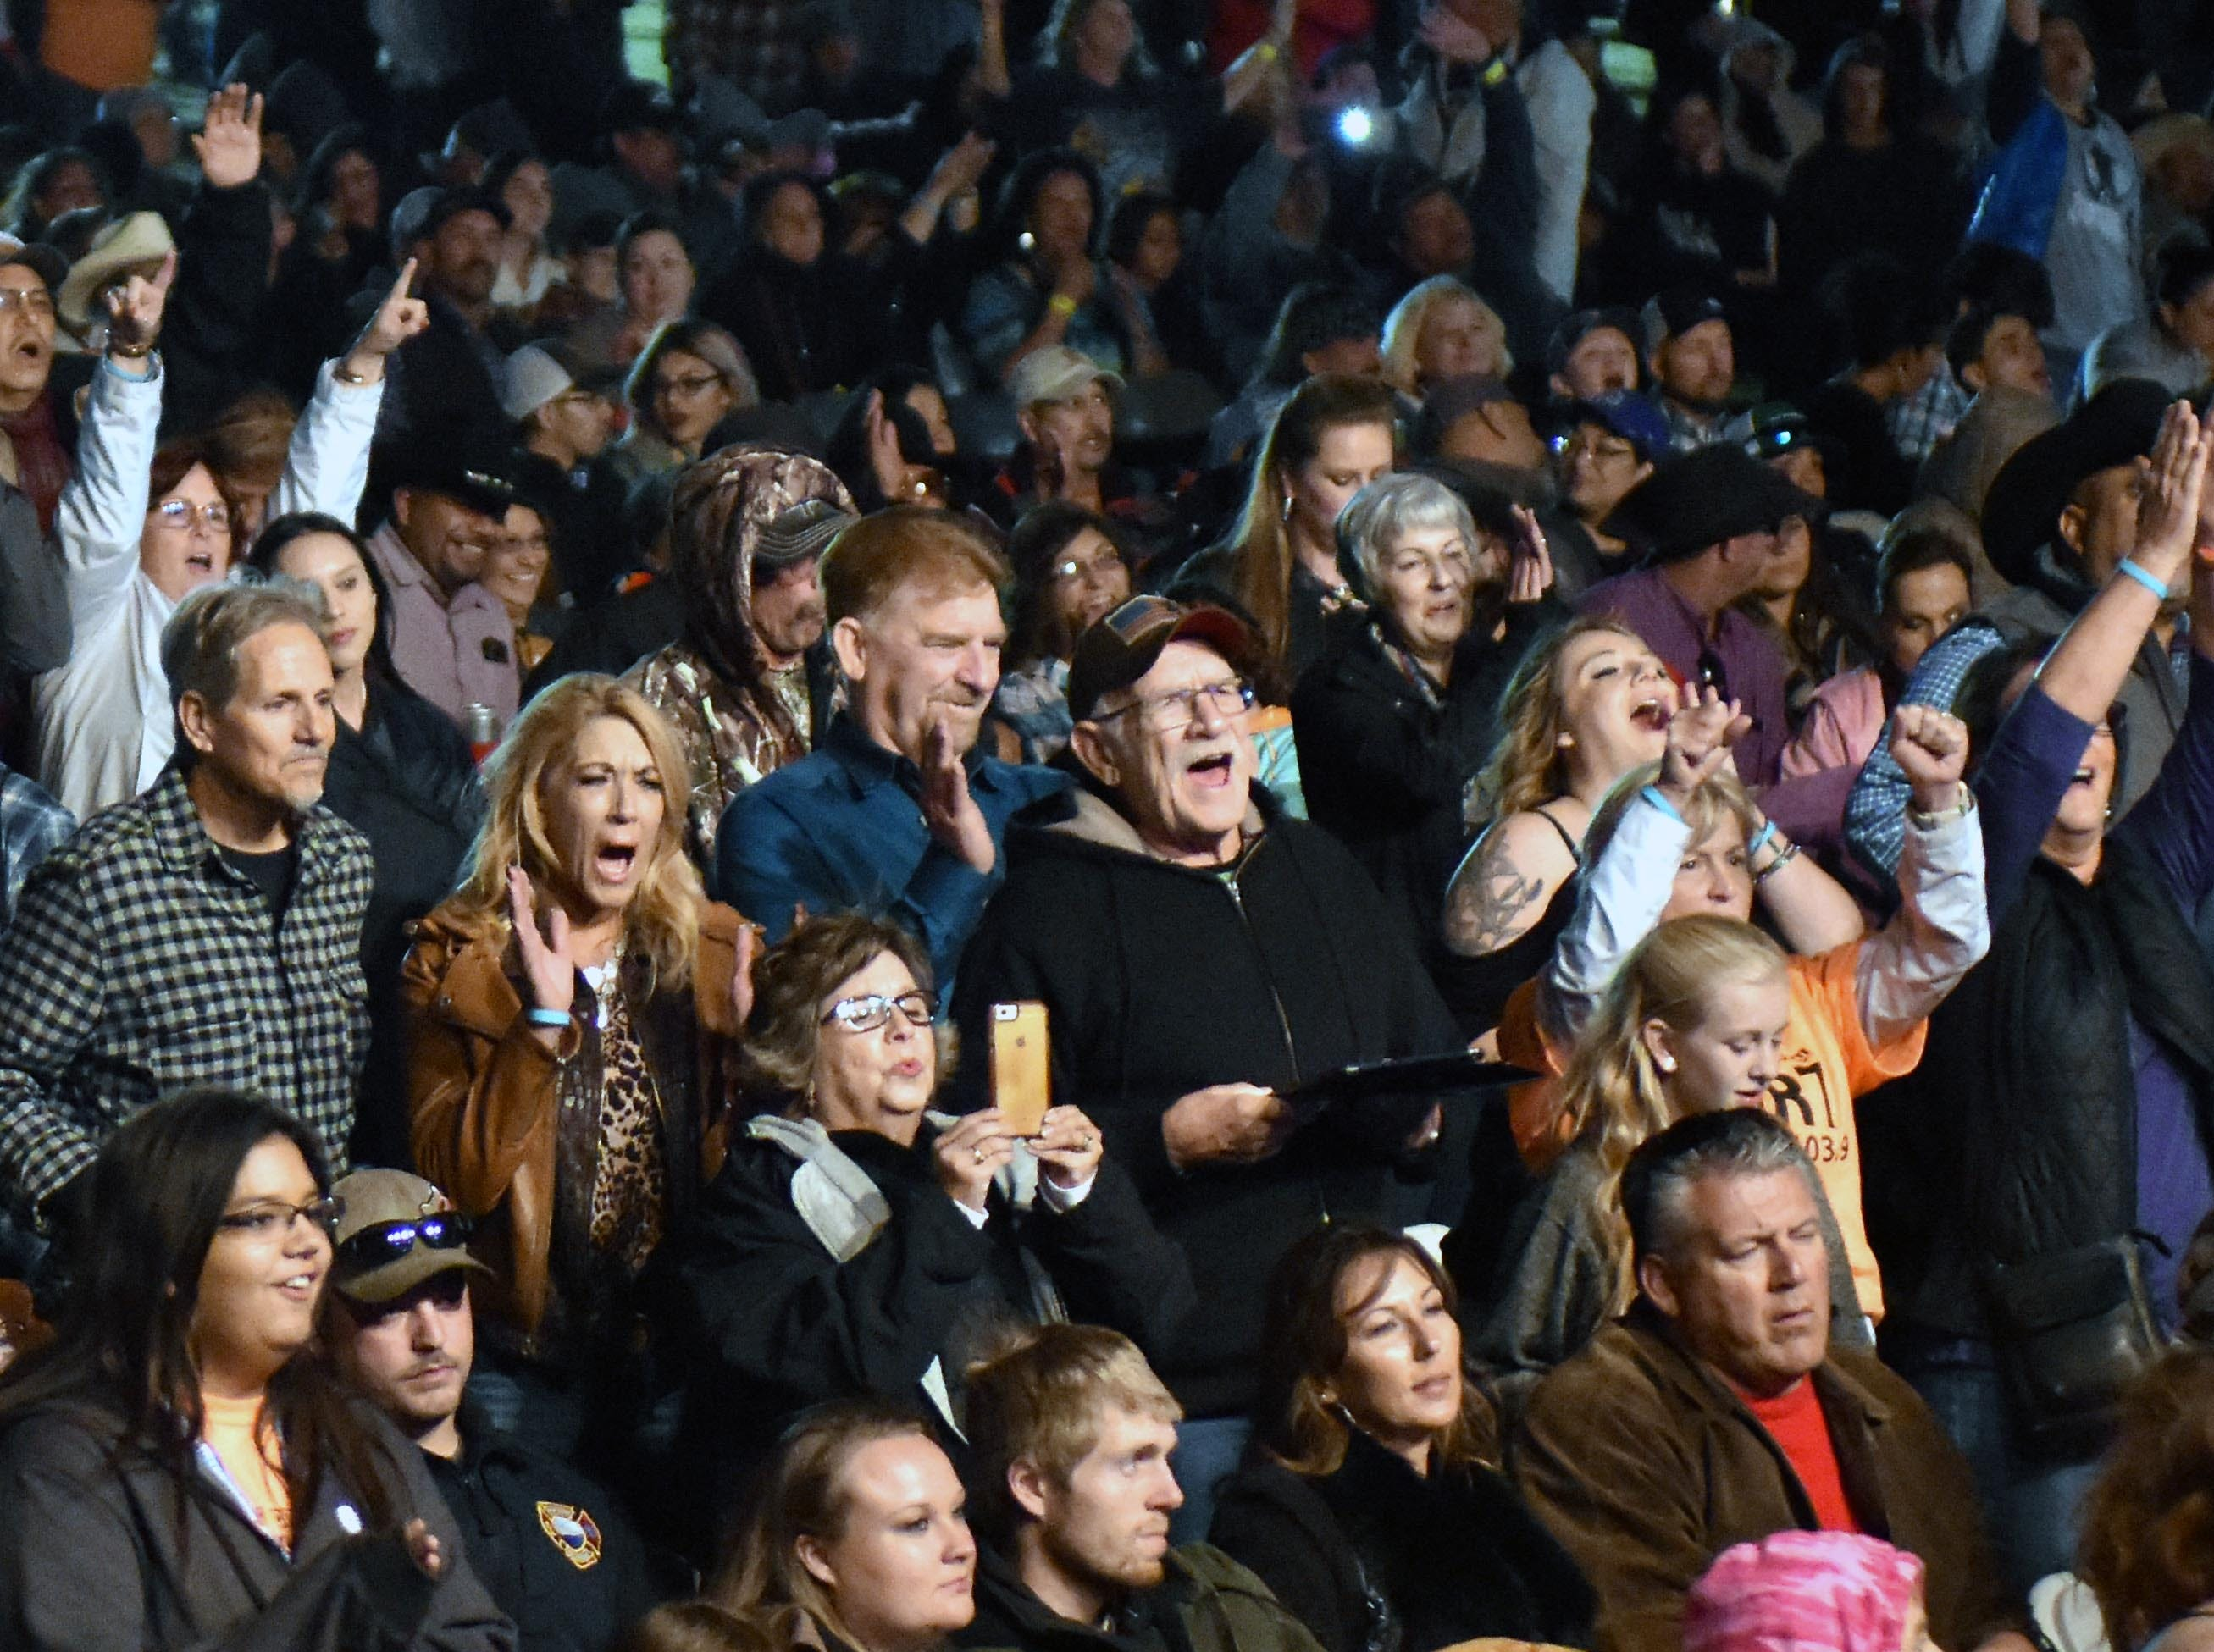 The crowd reacts to the evening's festivities at the Las Cruces Country Music Festival on Saturday, Oct. 20, 2018.